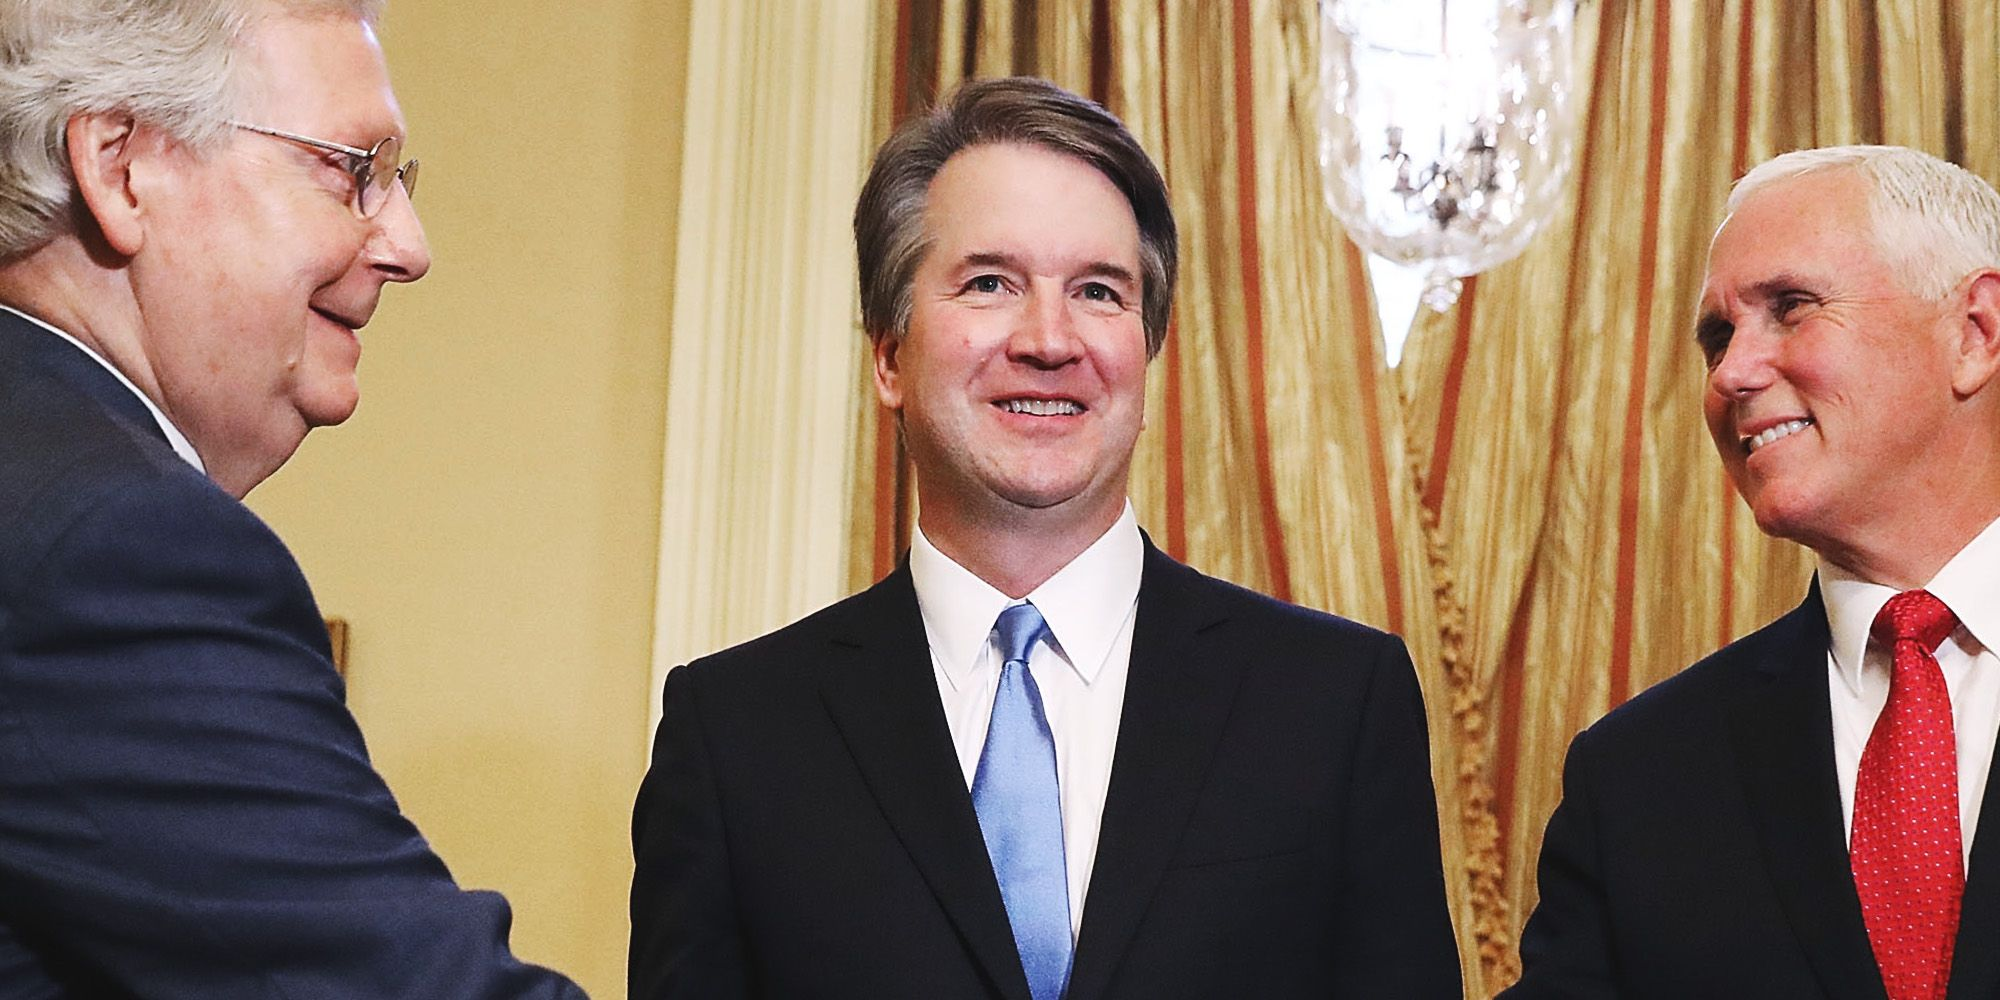 judge brett kavanaugh with mitch mcconnell and Mike Pence